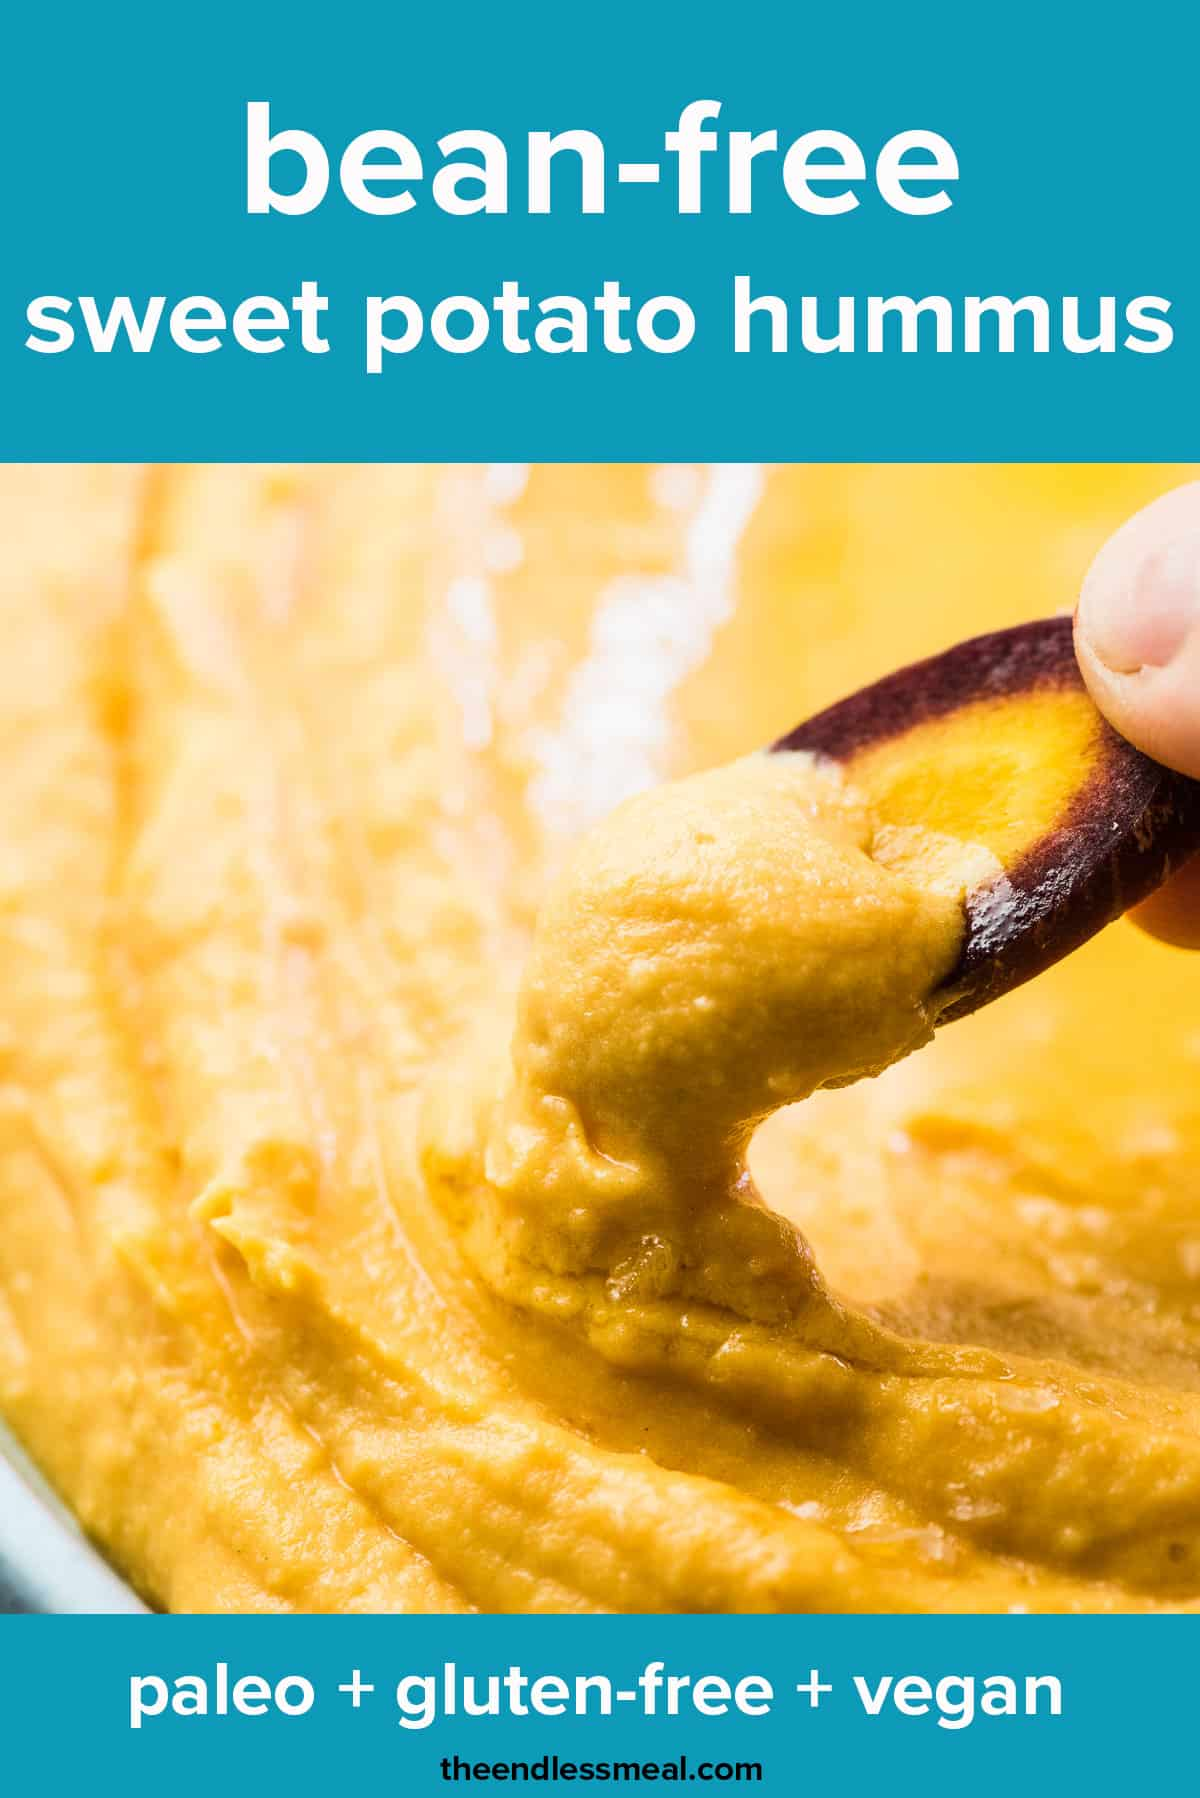 A carrot stick scooping up some sweet potato hummus with the recipe title on top of the picture.